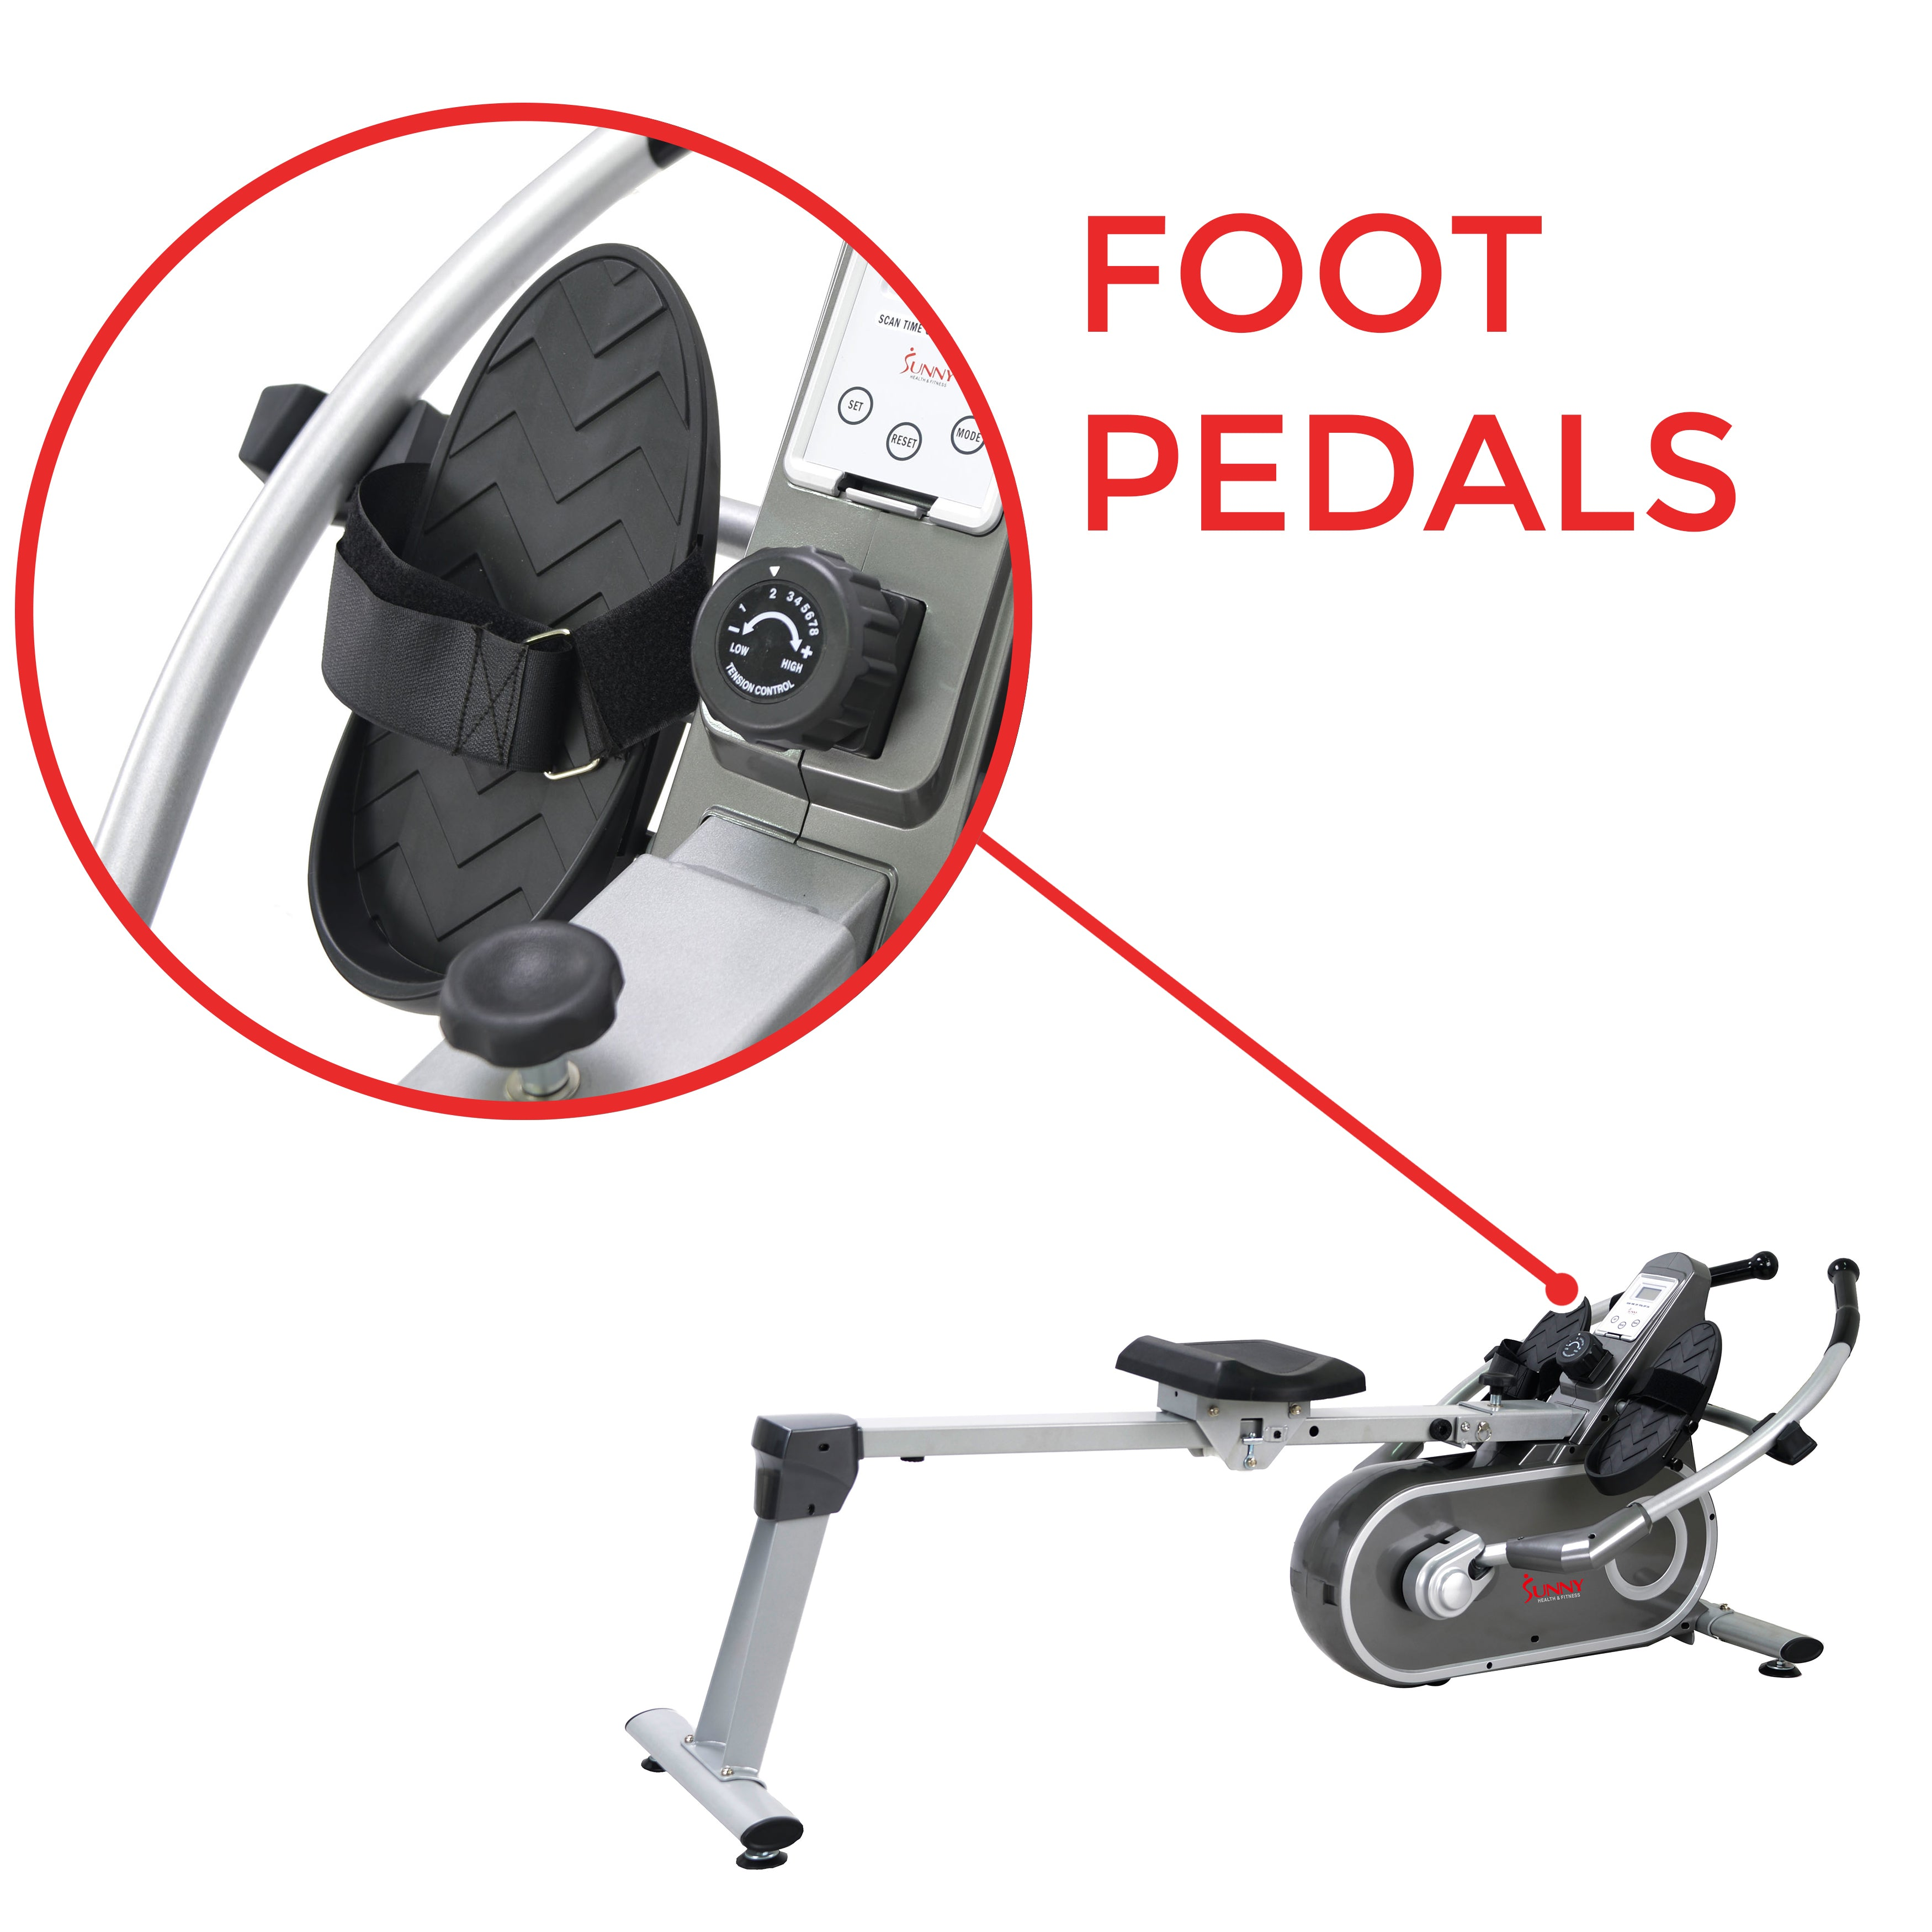 SF-RW5624_FootPedals_CallOut.jpg